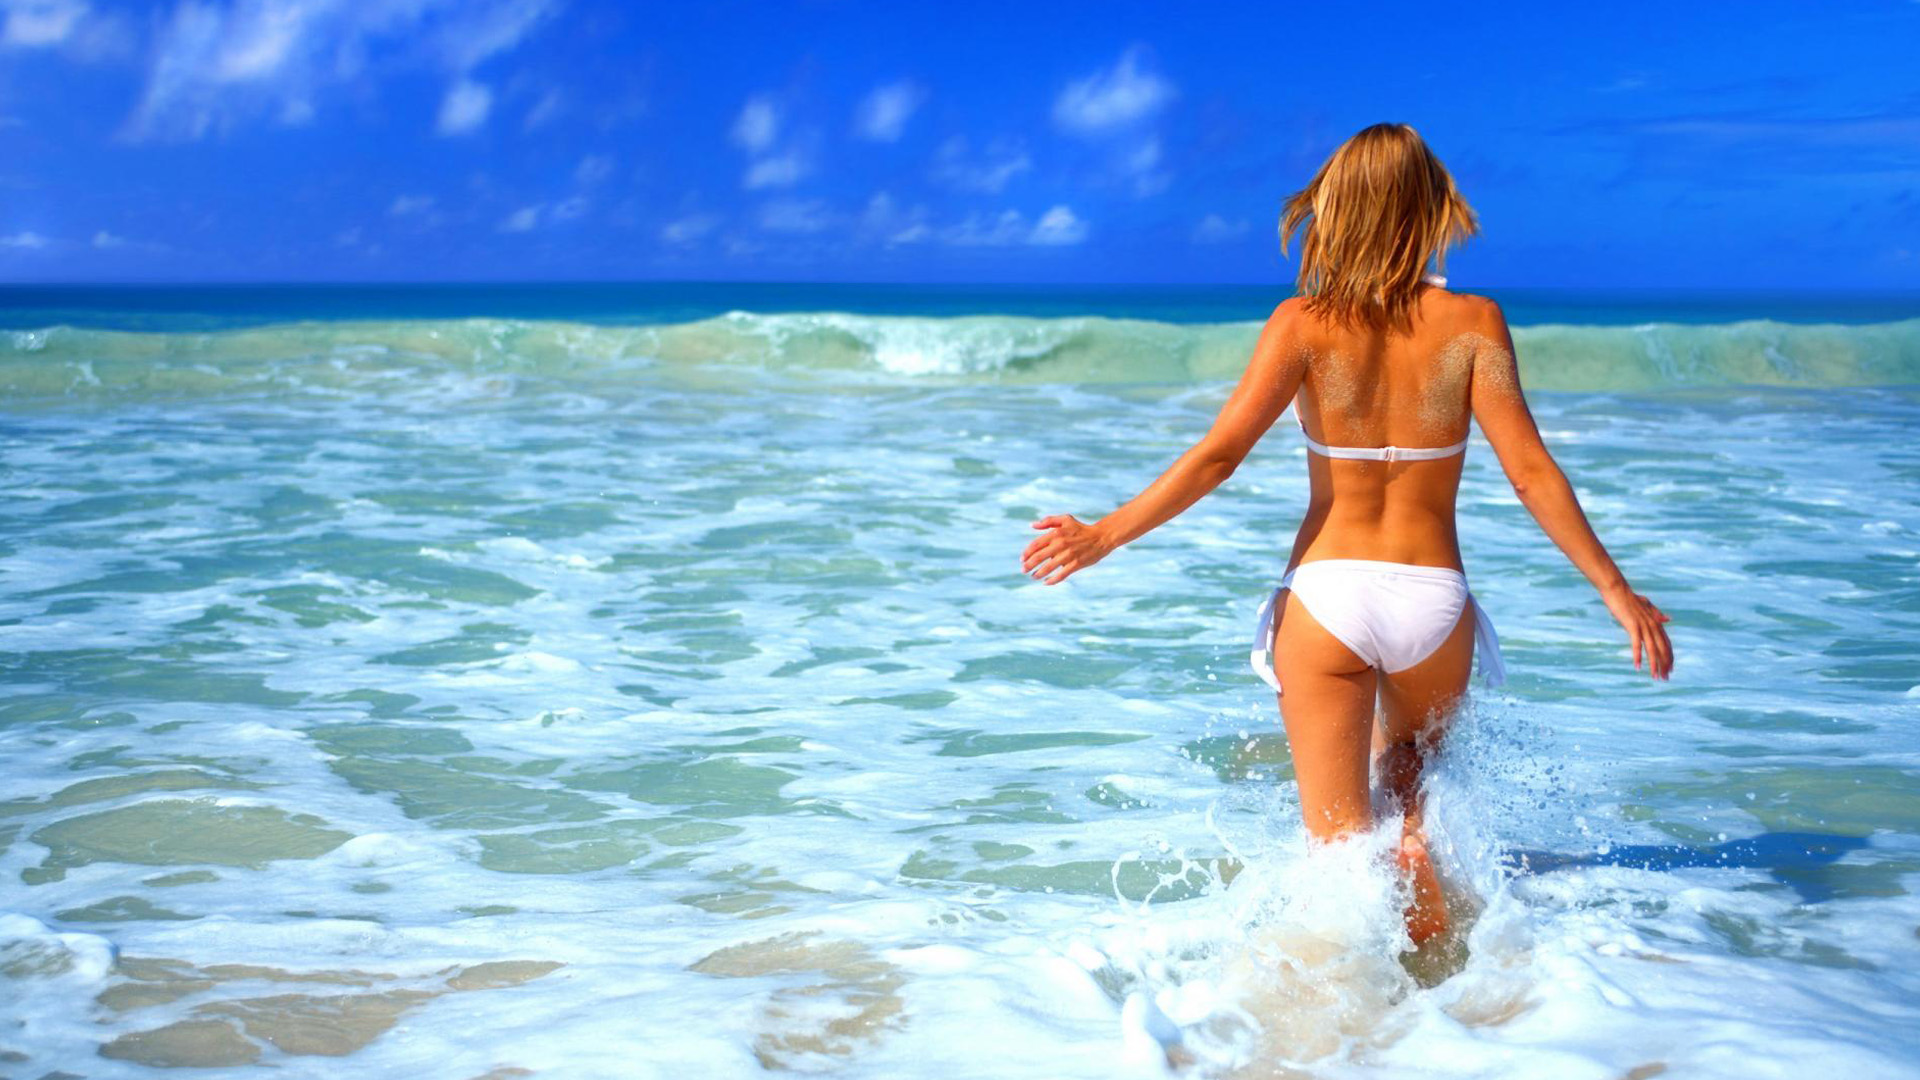 Download Beach Beauty Wallpapers Gallery